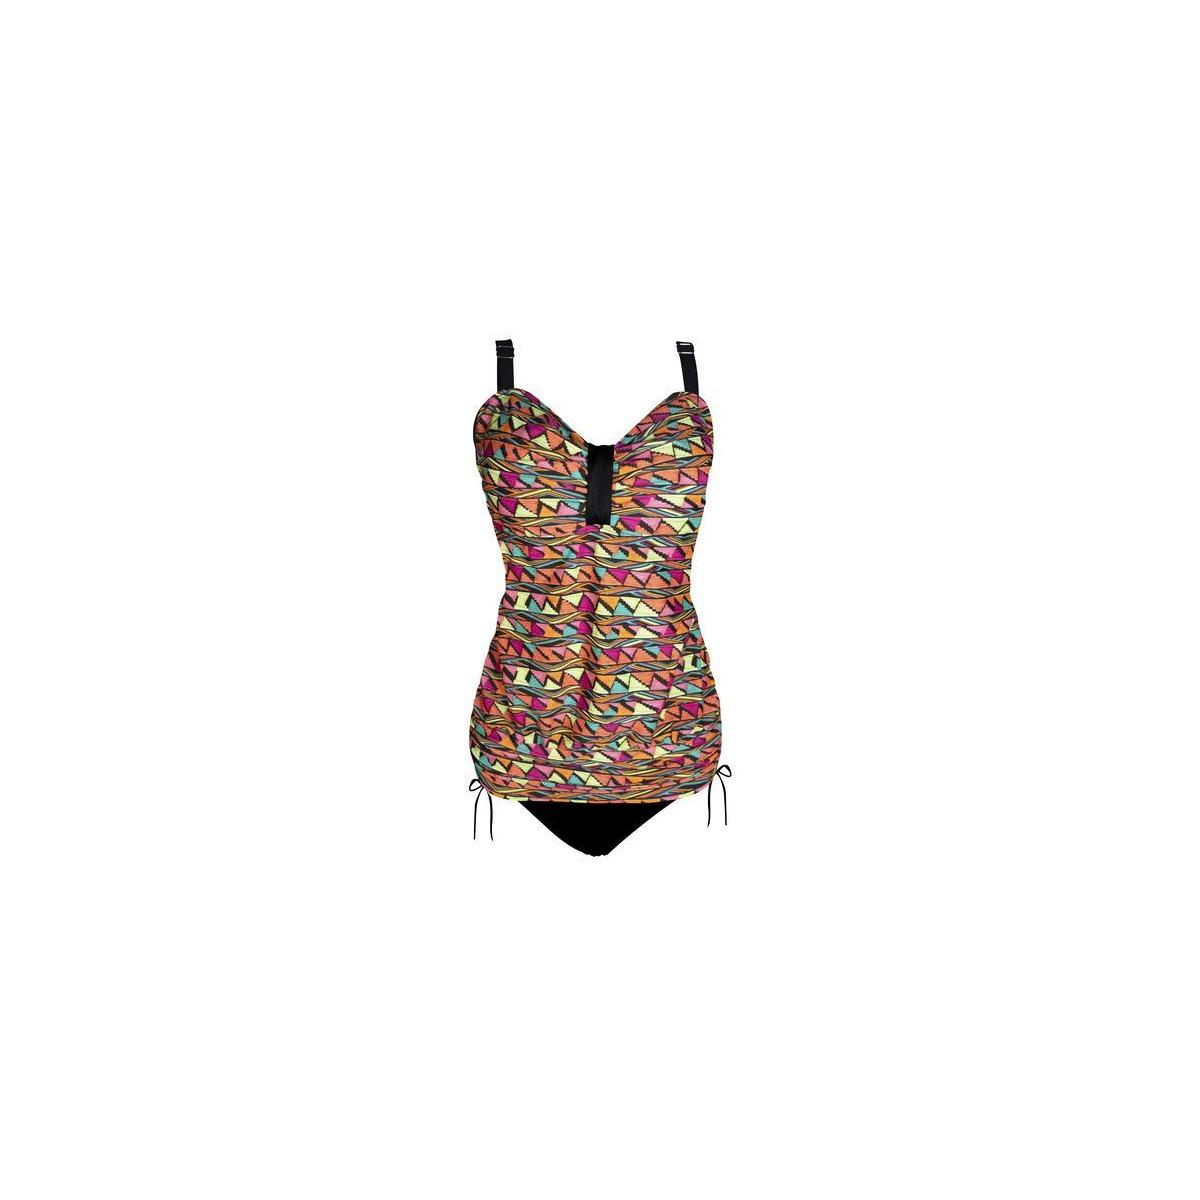 ALLEZ Women's Two Piece Swimwear Front Crossover Tankini Swimsuits Bathing Suits UPF 50+ (Color: Multi Colored / Fiesta Pattern)